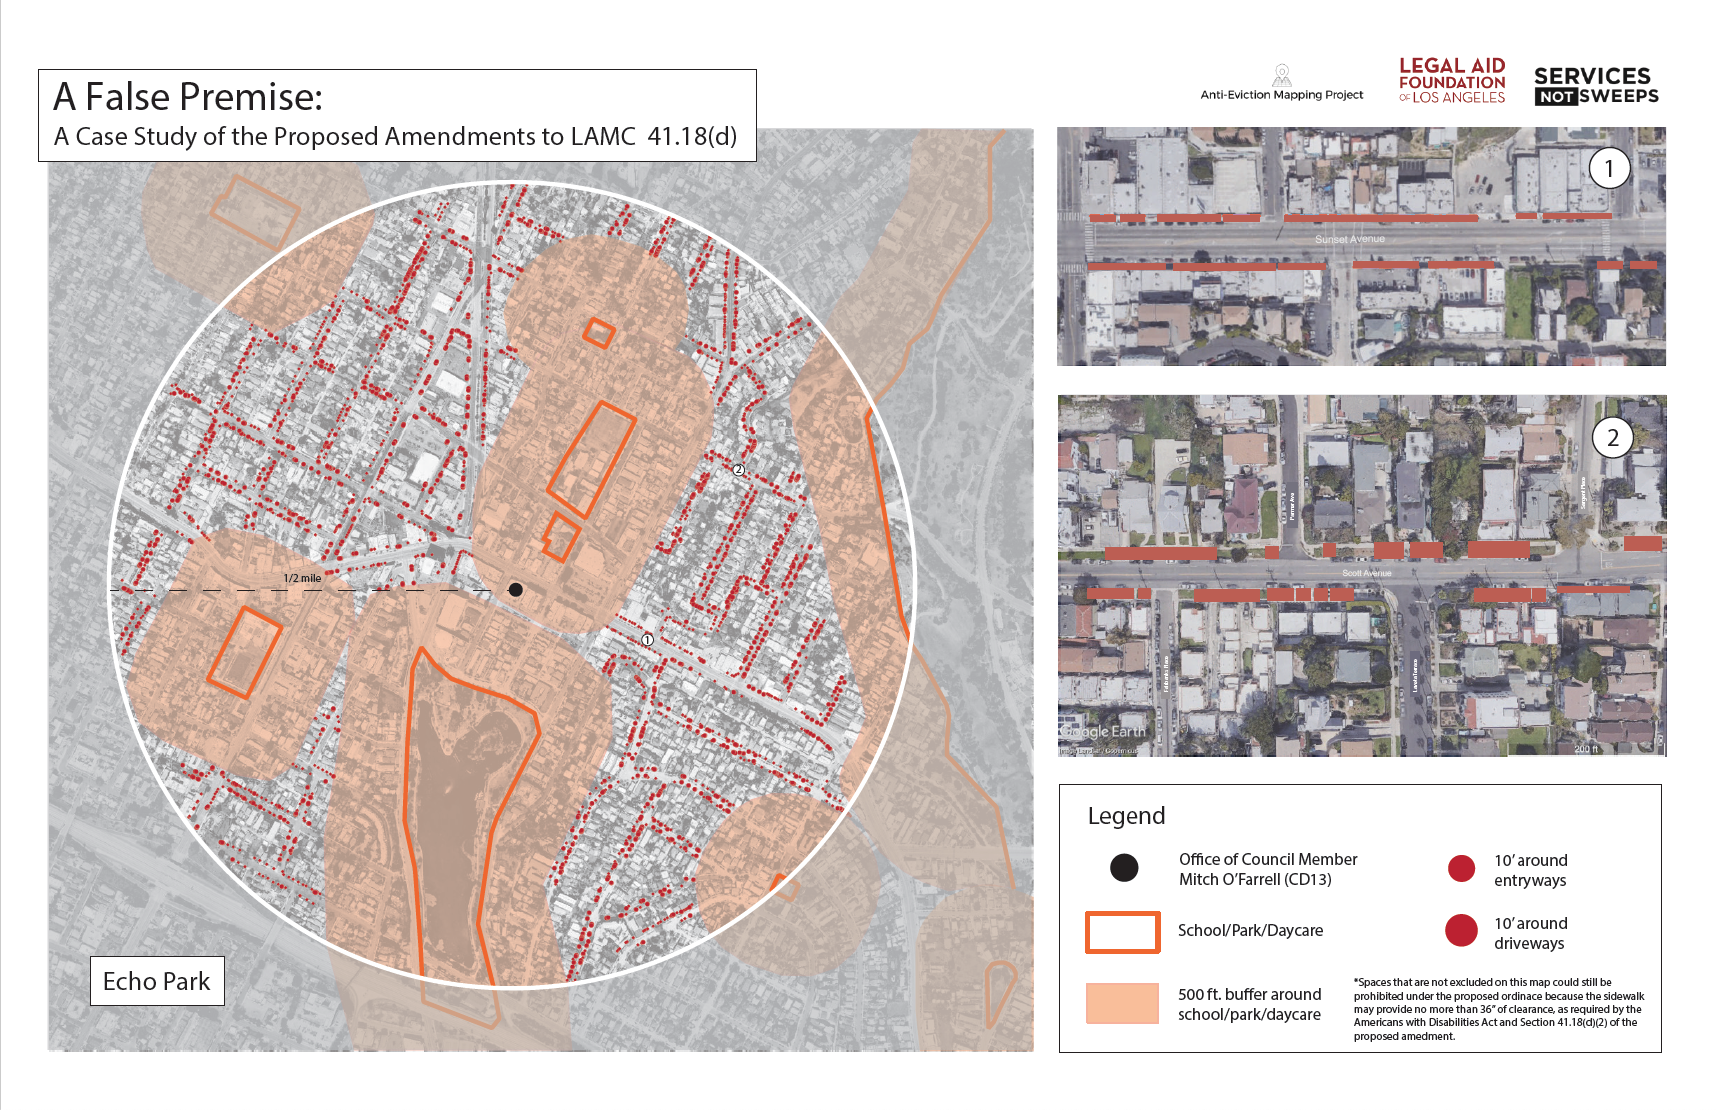 Anti-Eviction Mapping Project on